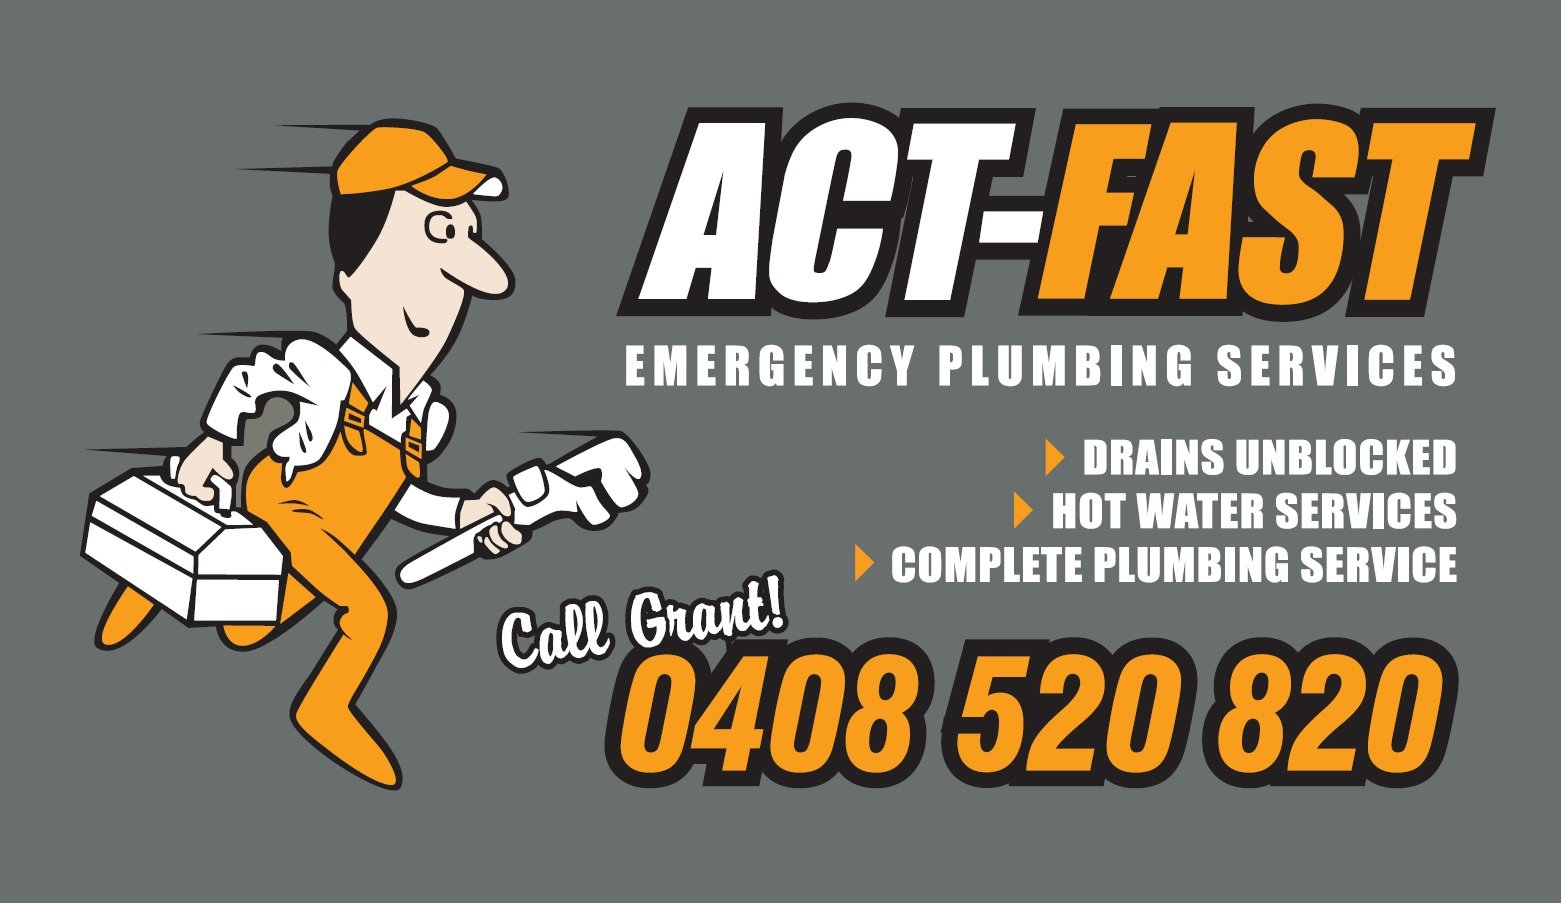 act-fast-emergency-plumbing-services-logo